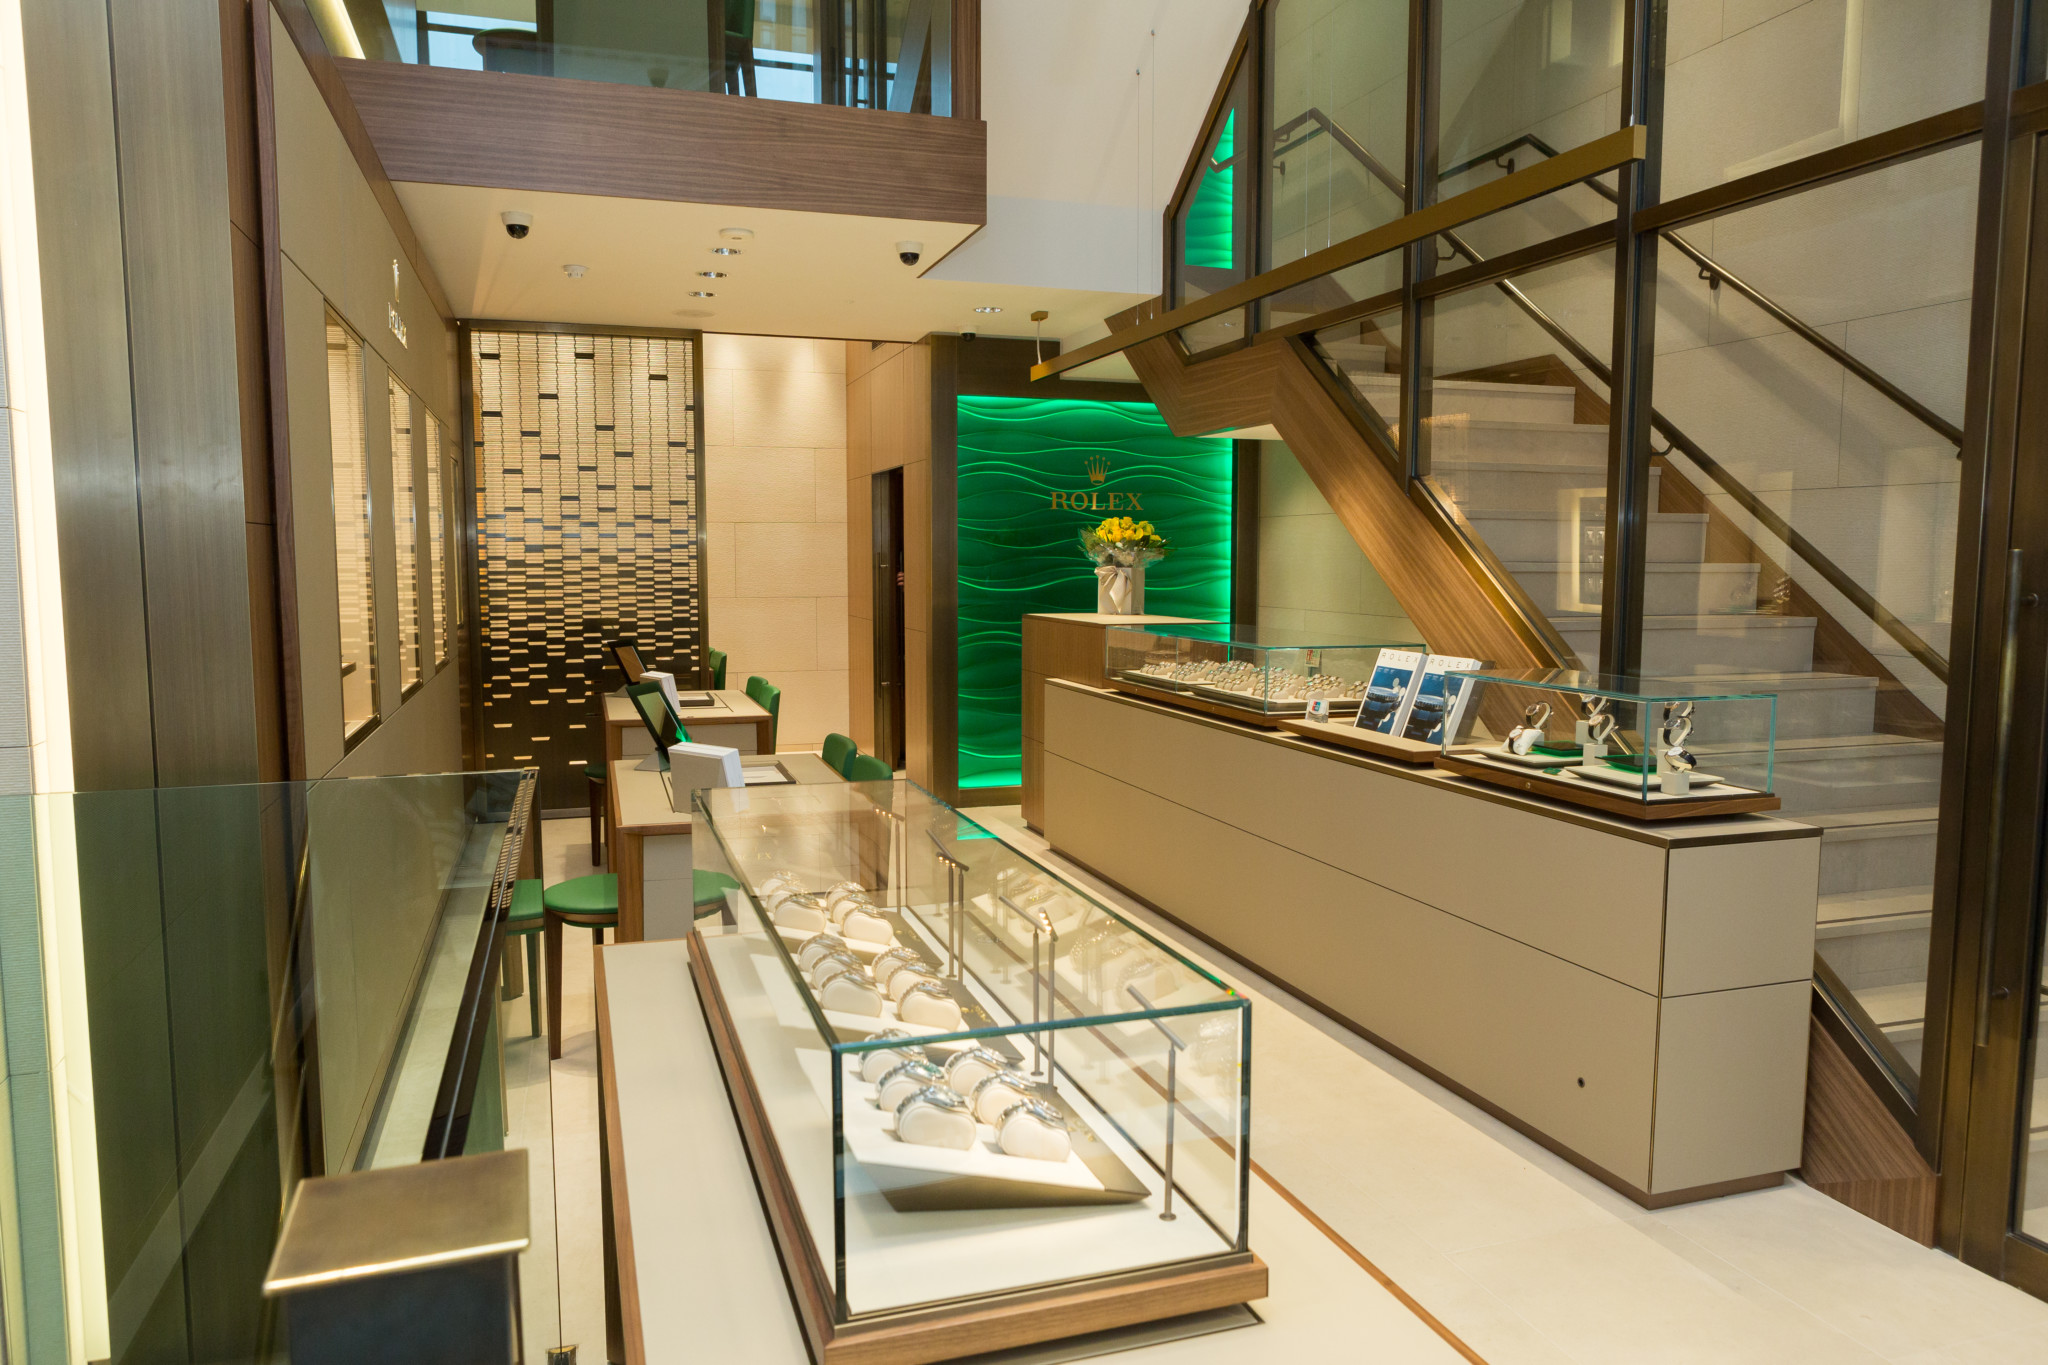 Rolex Boutique Opening Old Bond St-4299